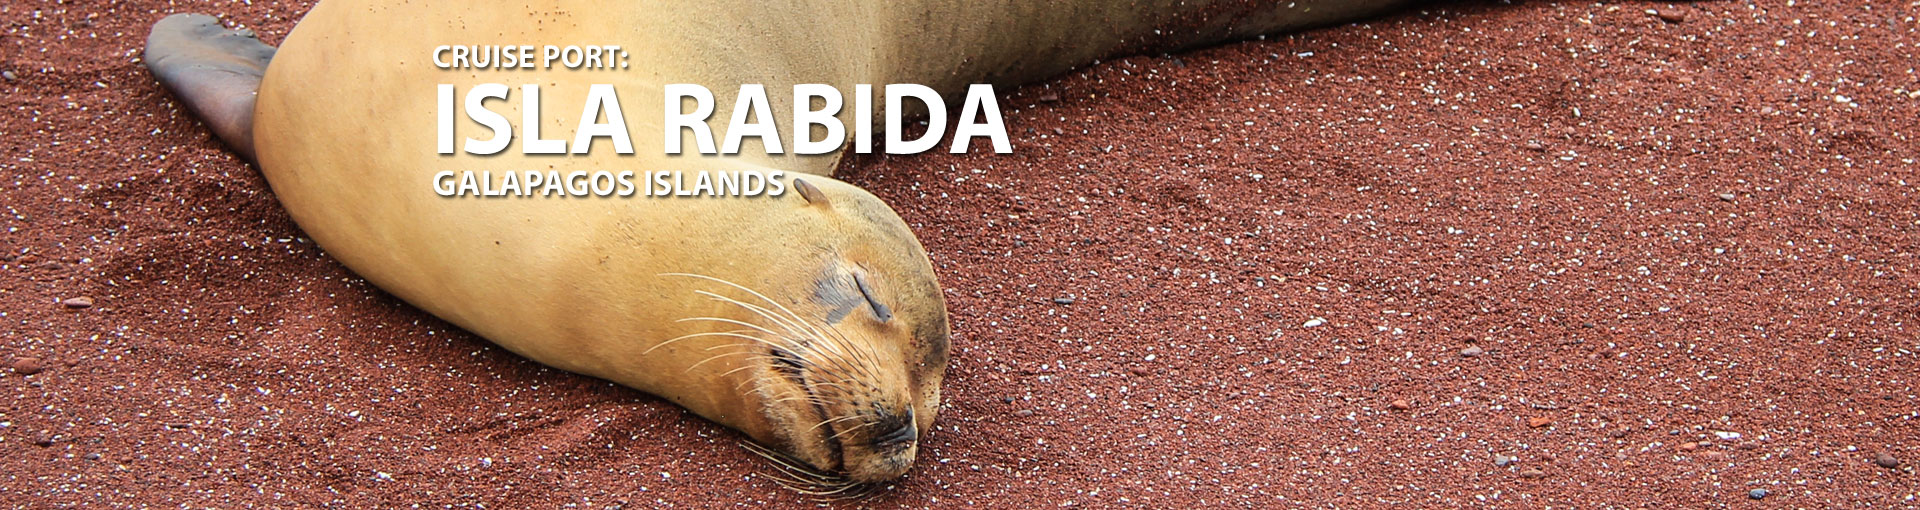 Cruises to Isla Rabida, Galapagos Islands